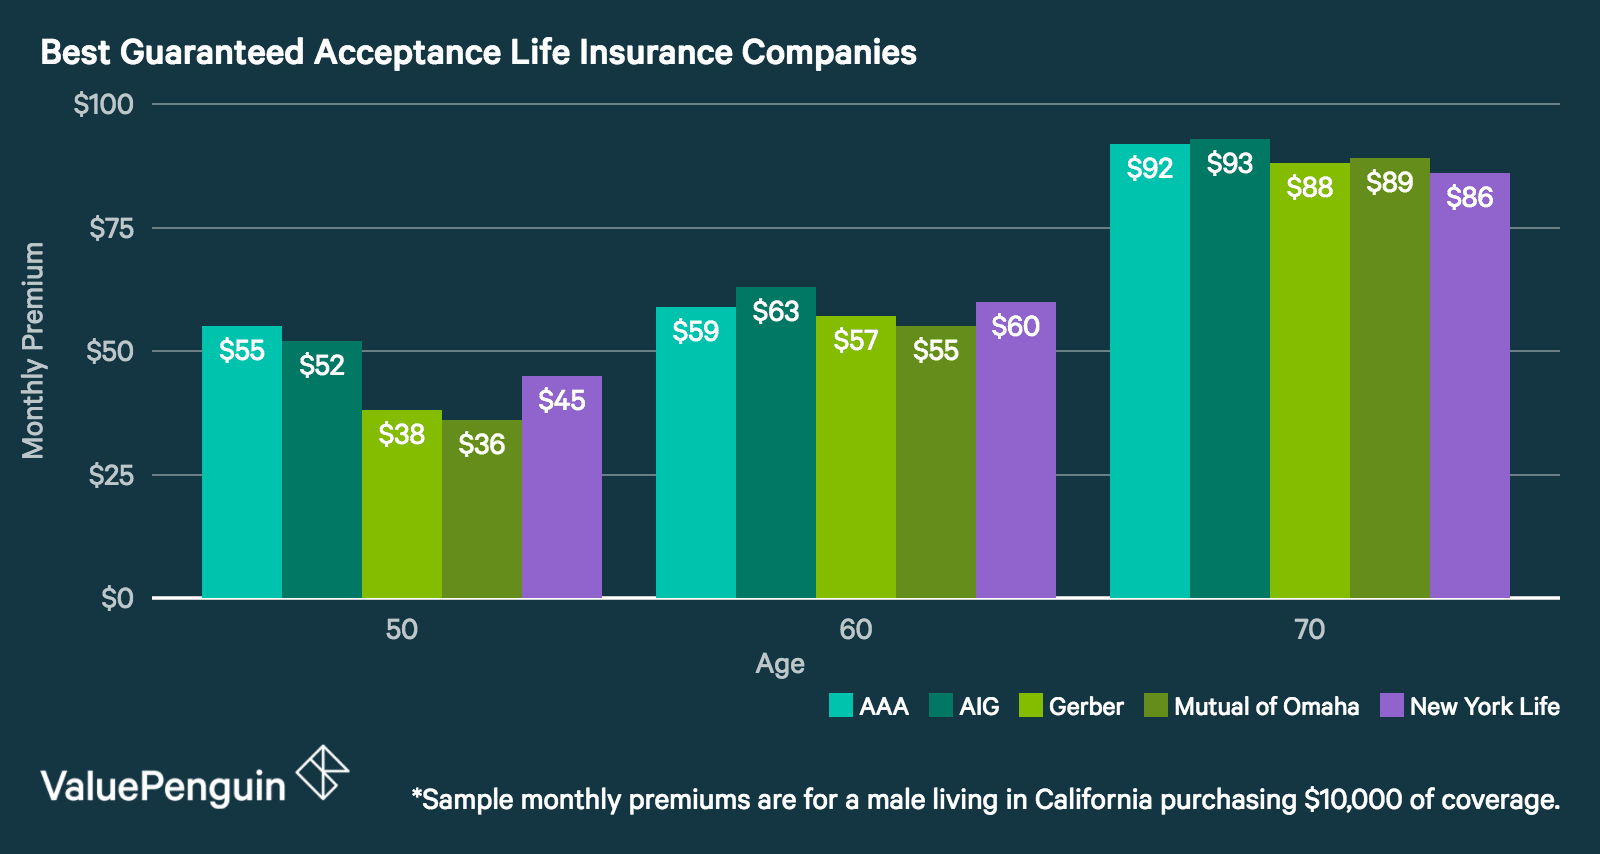 Aig Term Life Insurance Quote Guaranteed Acceptance Life Insurance Best Companies & What To